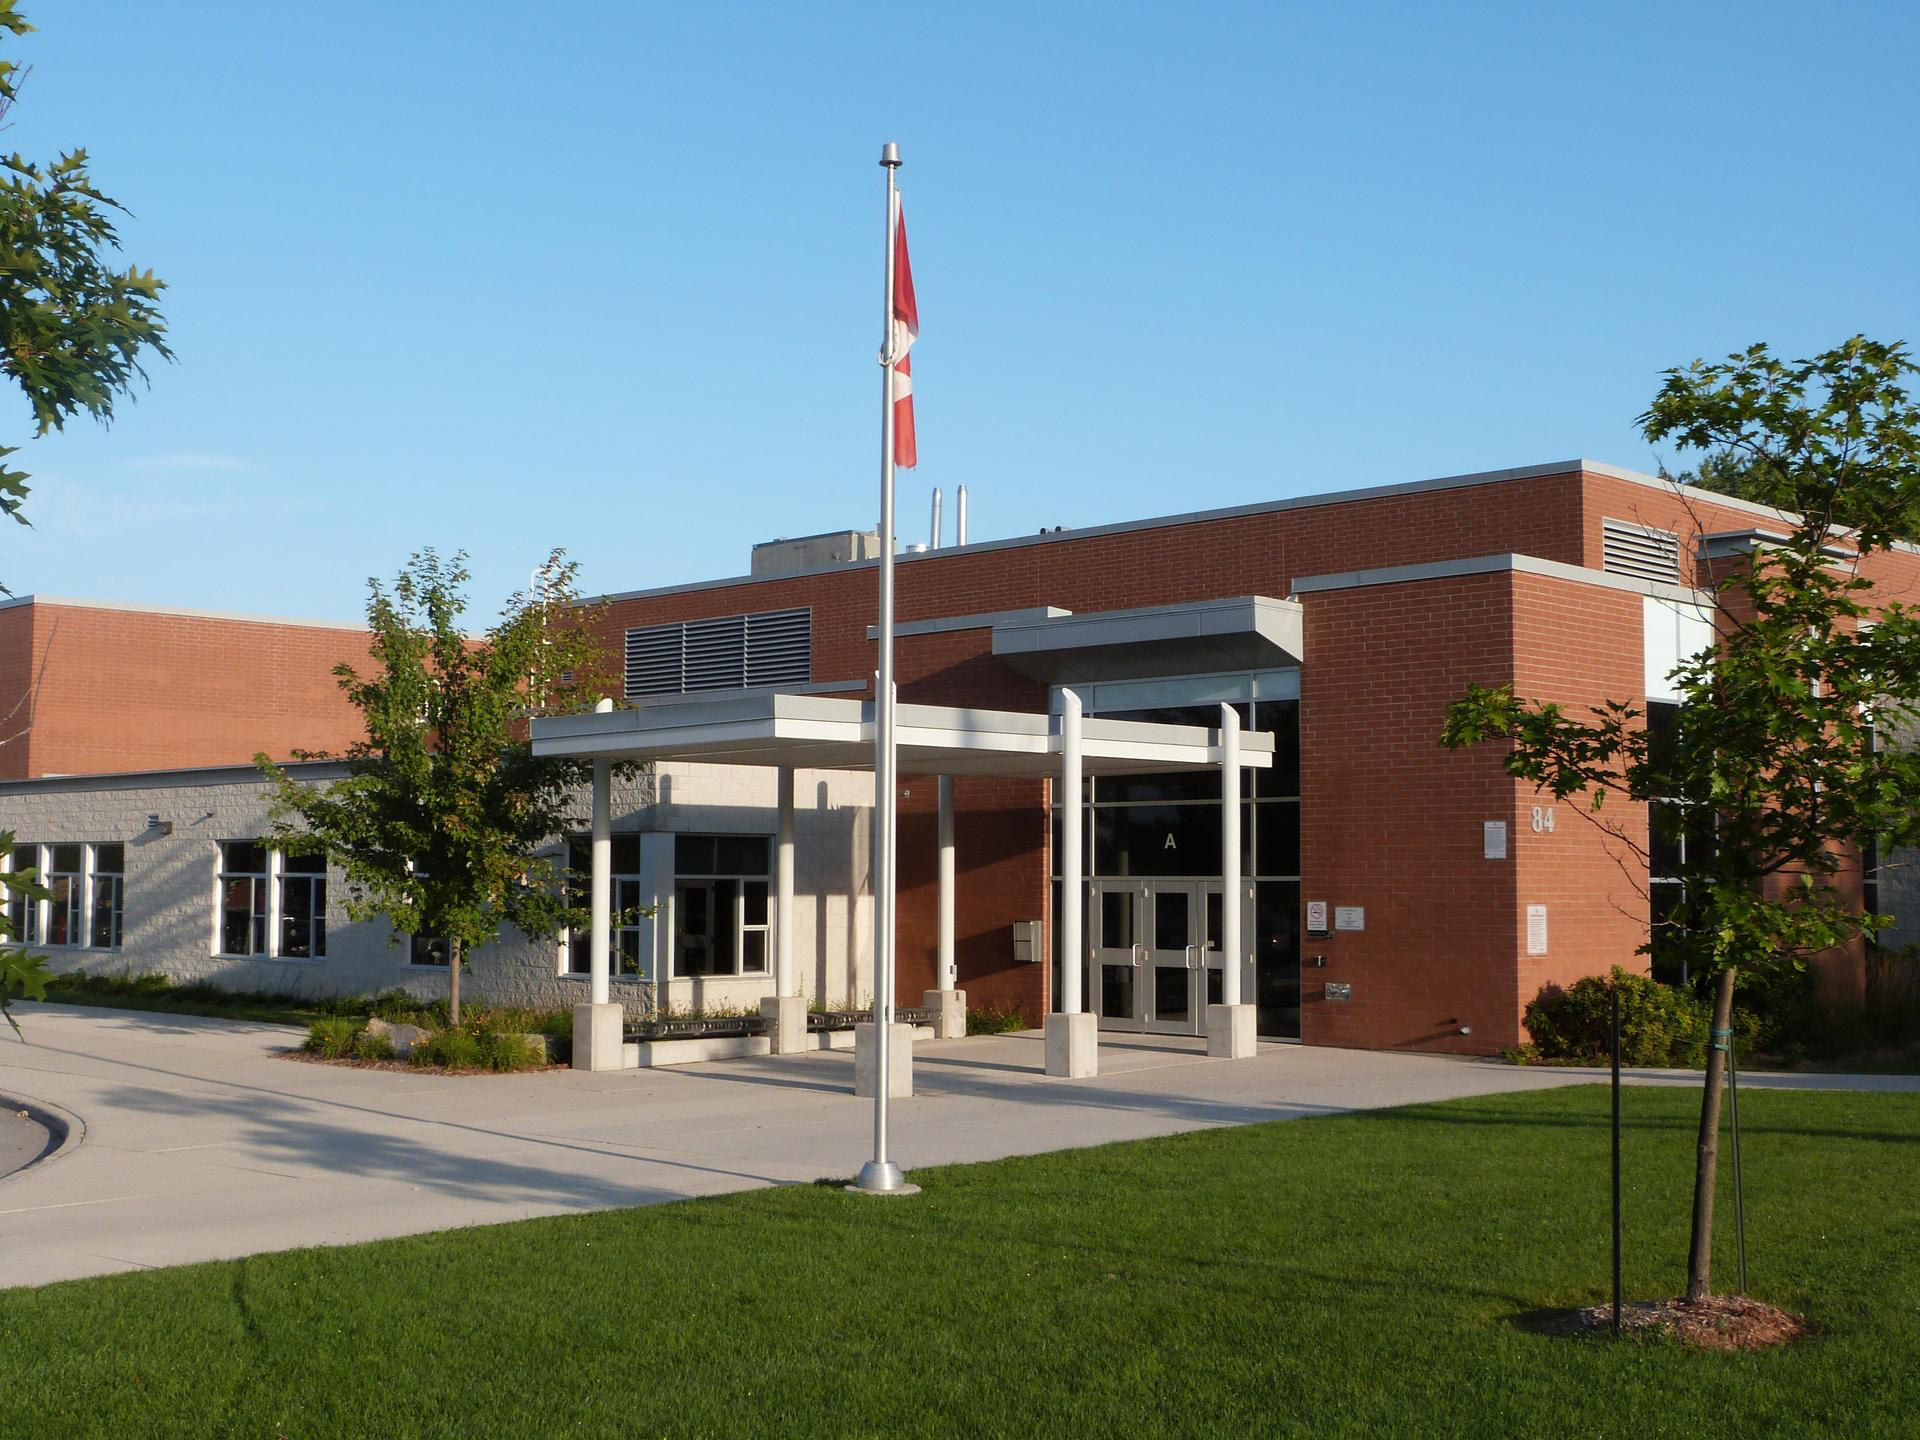 Front view of St. Anne's Catholic School, St. Thomas